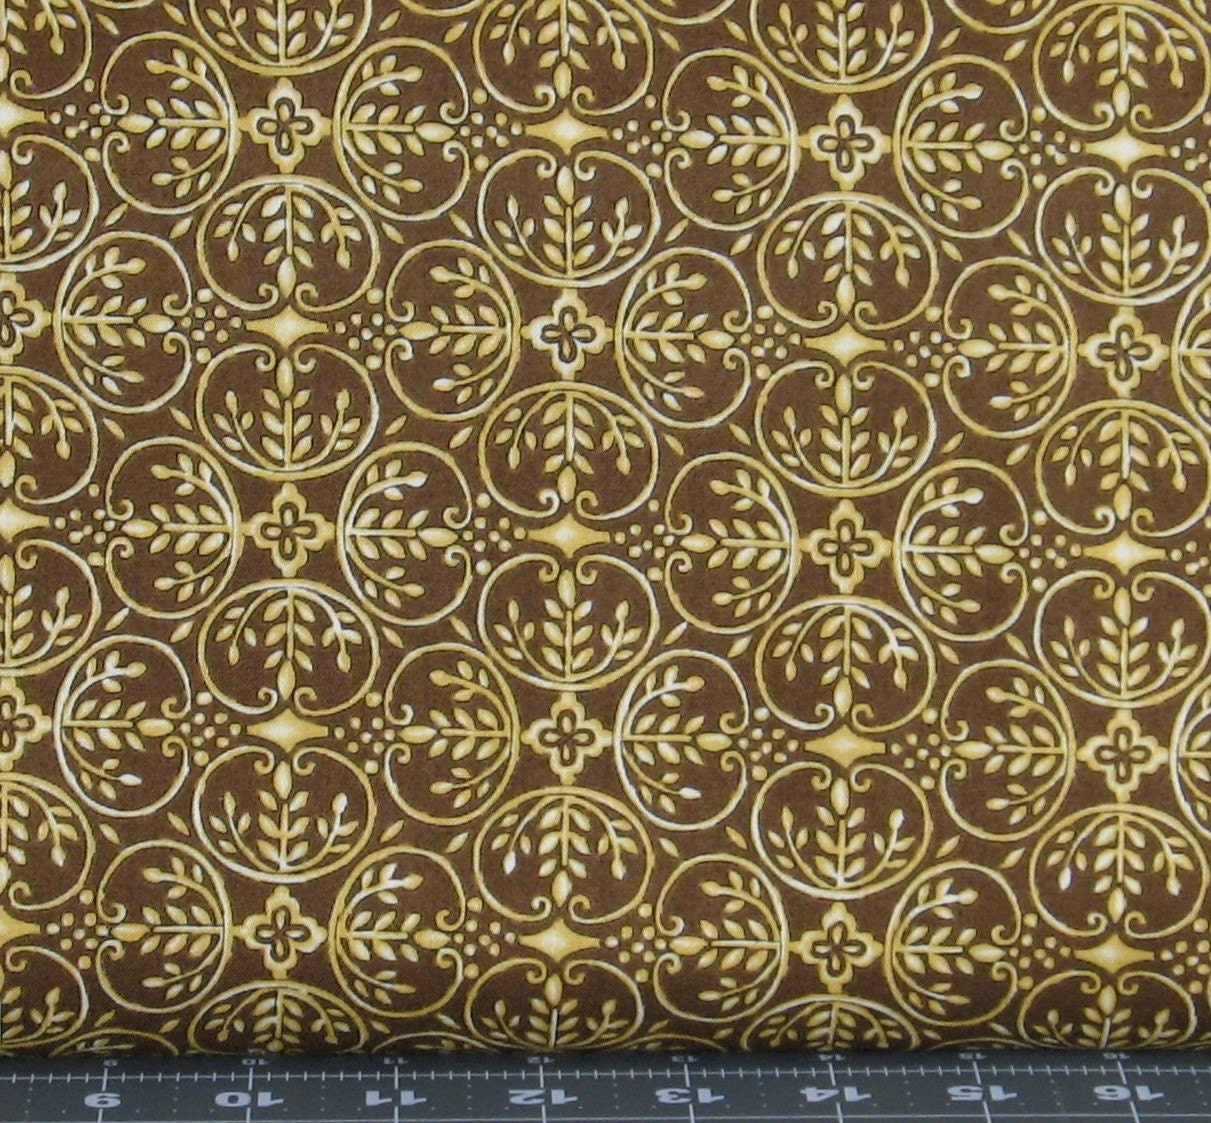 Gold design on brown cotton quilt fabric for sale for Quilting fabric sale